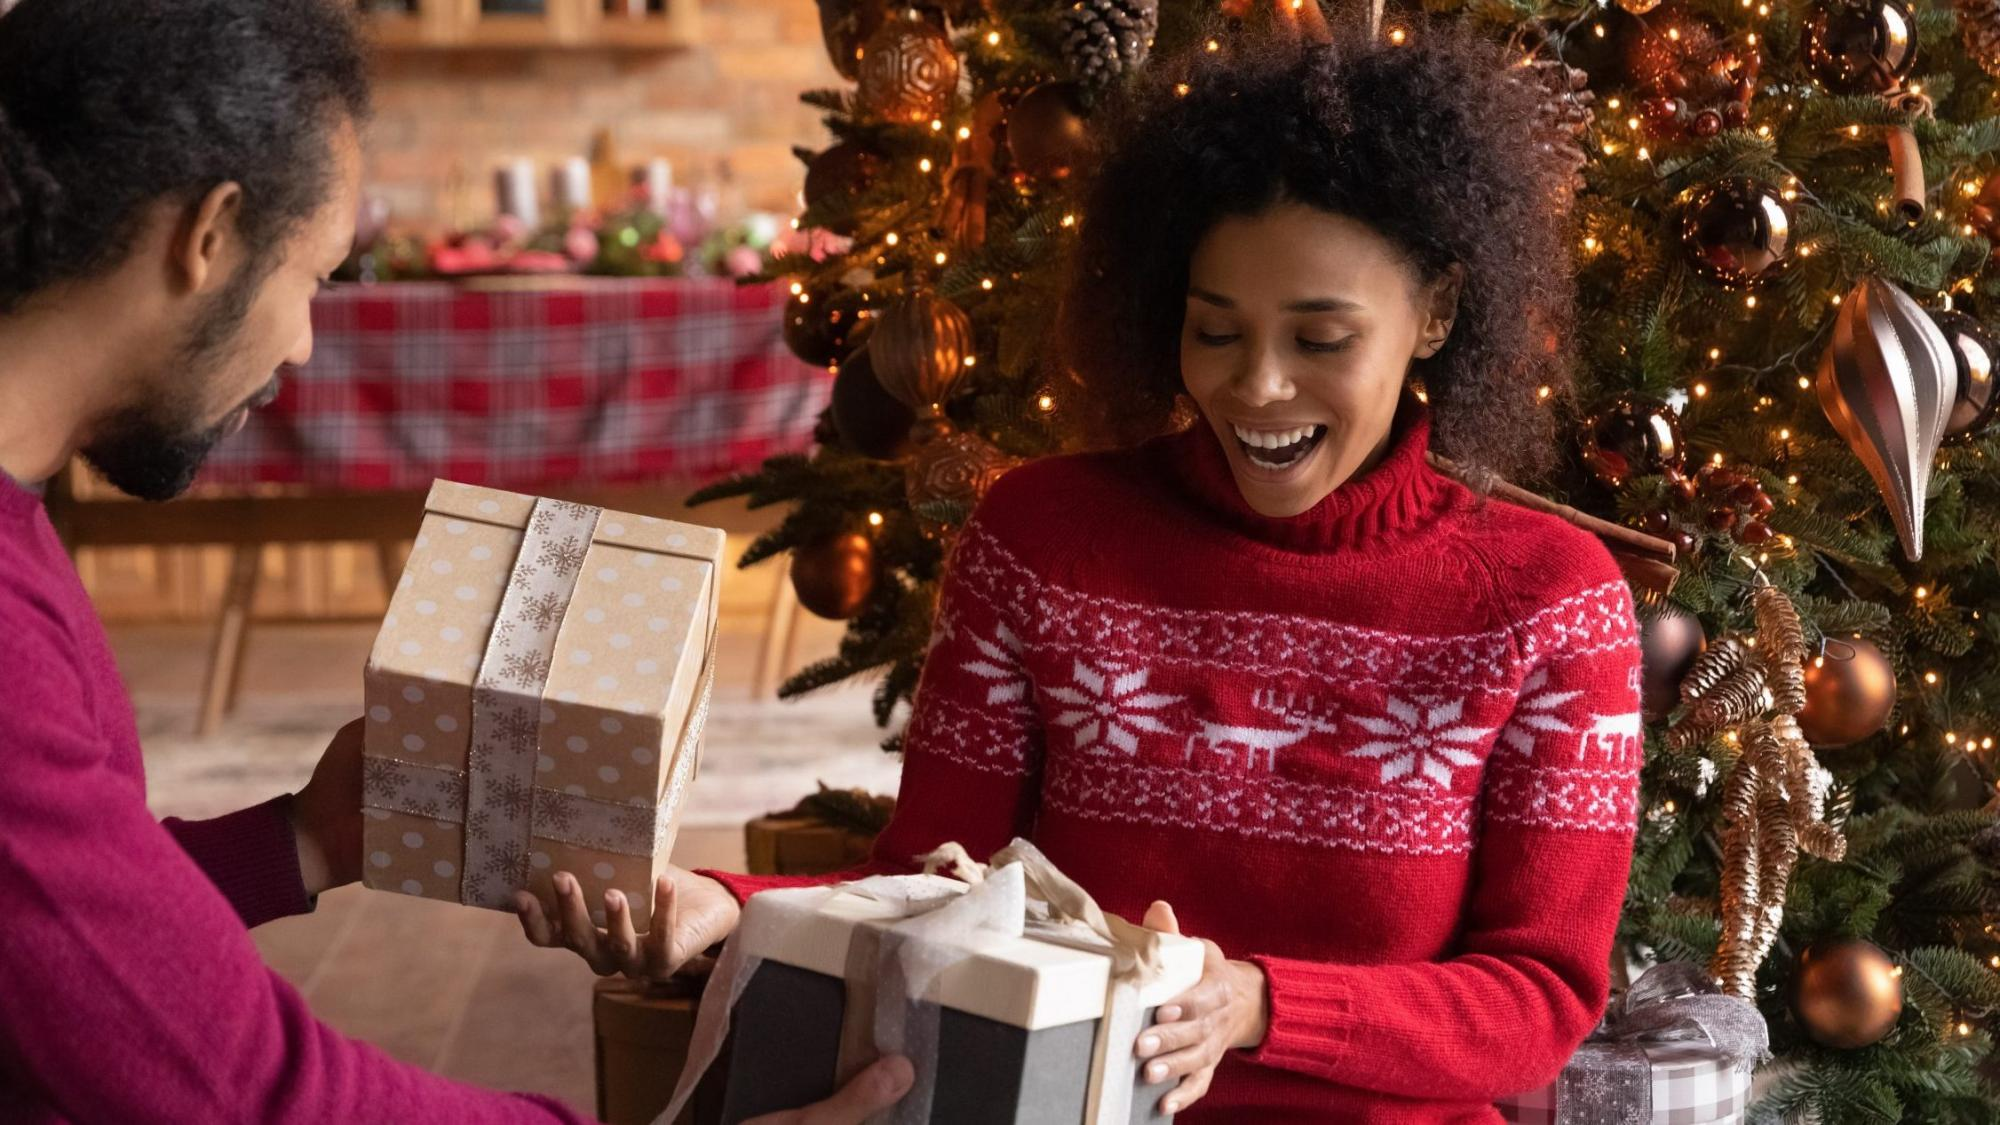 Best Christmas Gifts for Women 2020 :: WRAL.com